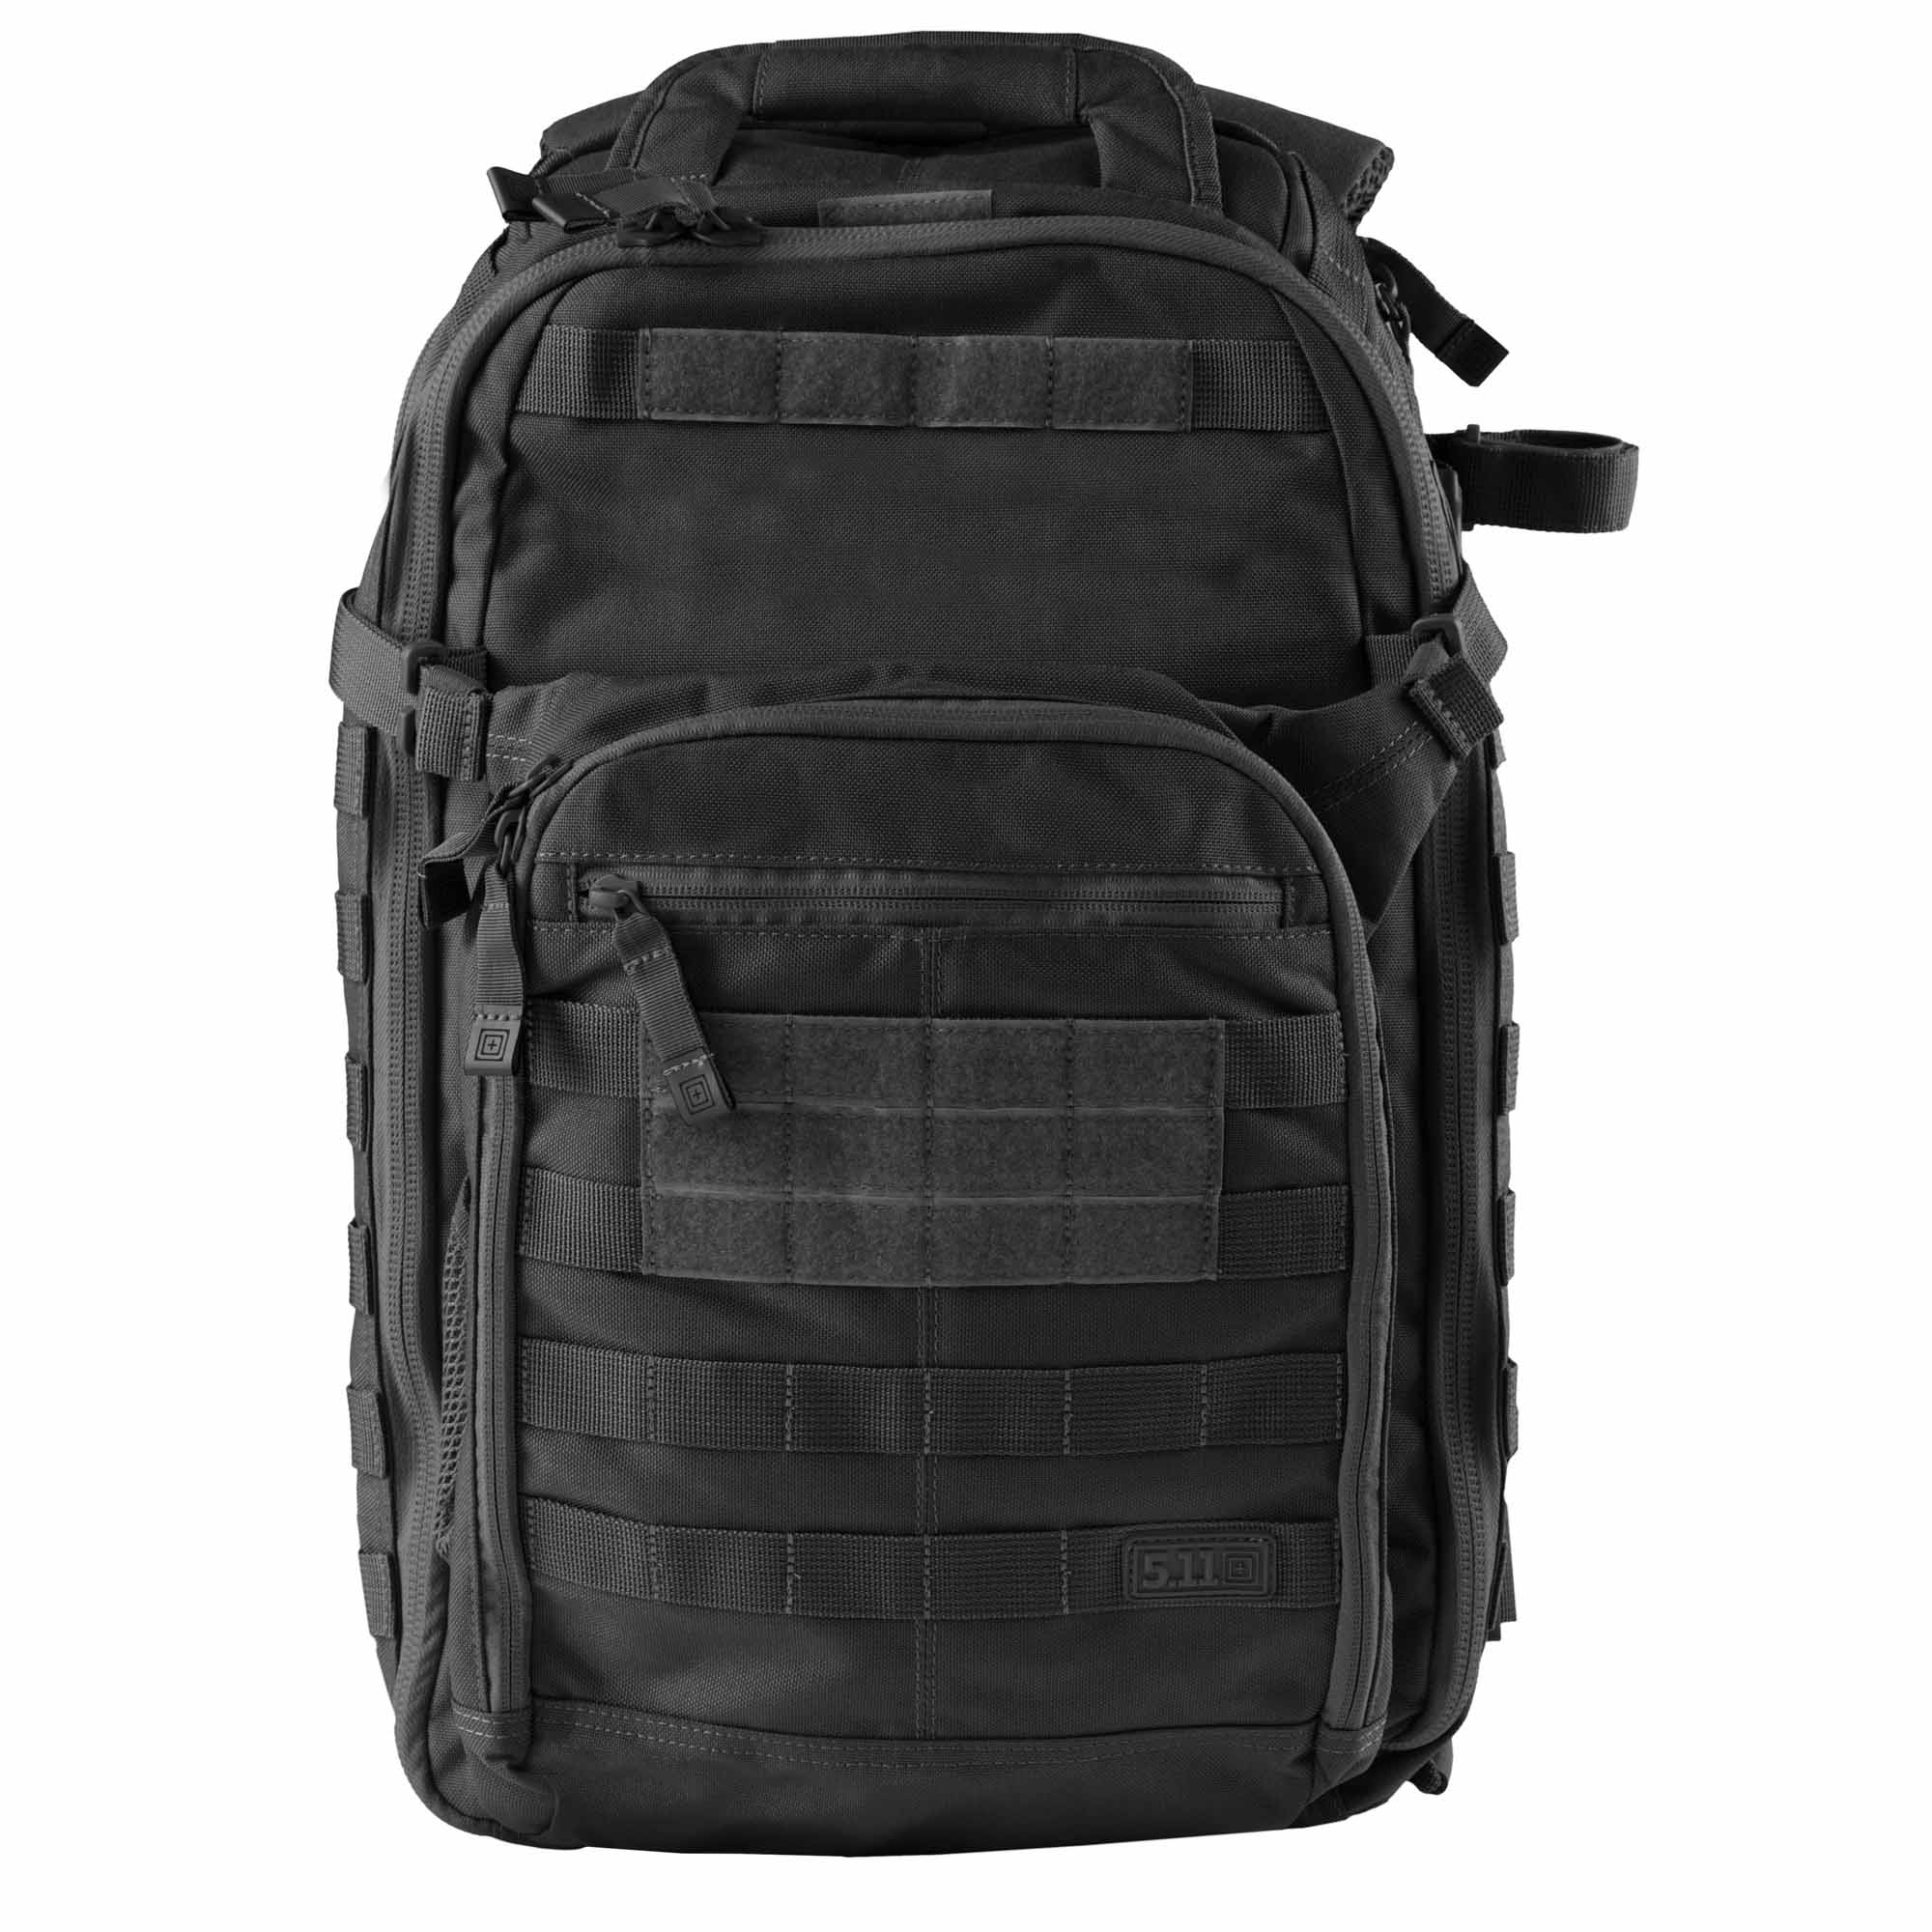 94488a0a7b22 5.11 Tactical RUSH 12 Tactical Backpack - 5.11 Tactical